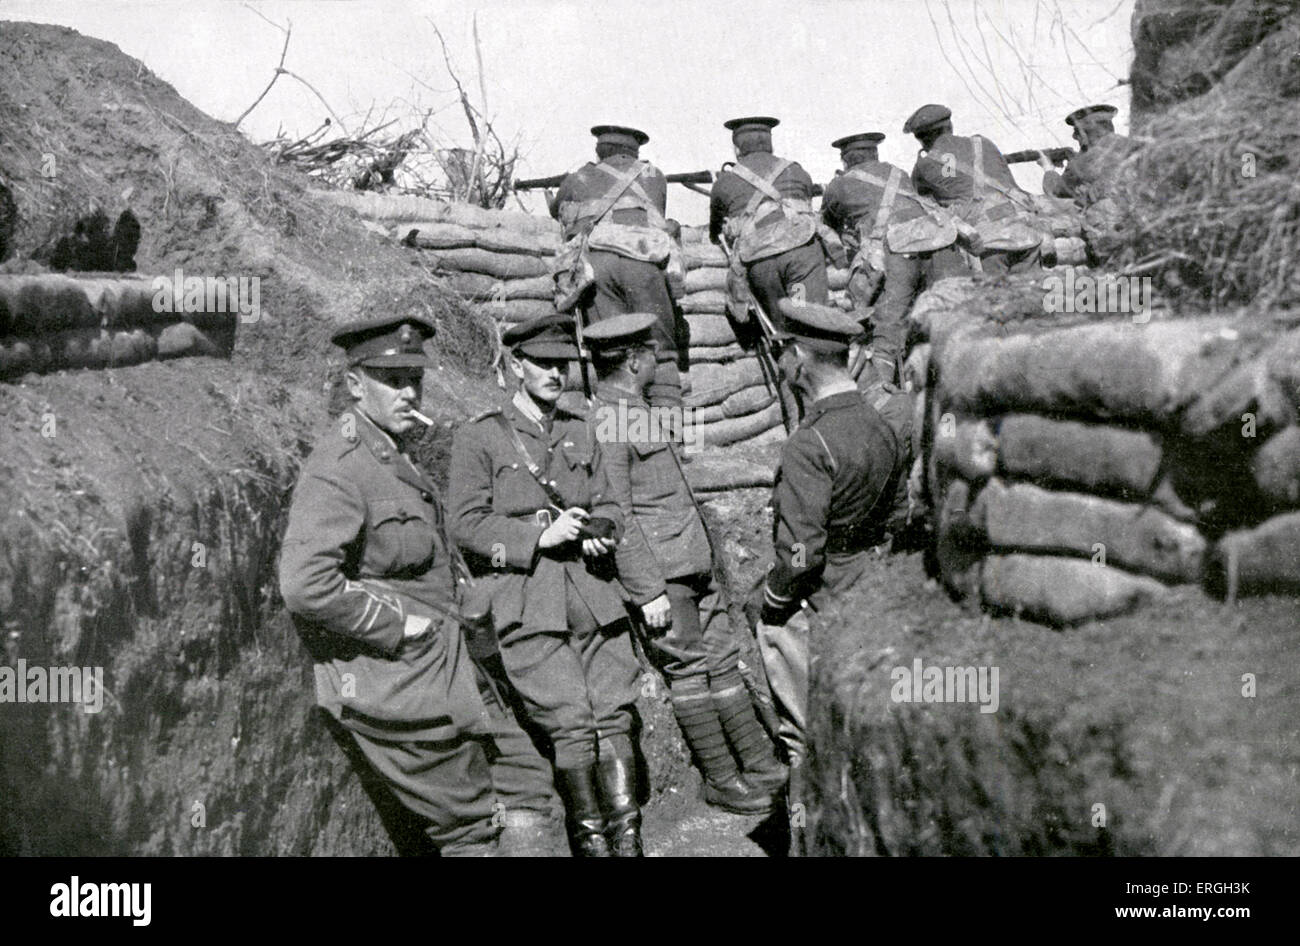 British Army in the trenches near Salonika, April 1916 during World War 1. Salonica, known as Thessaloniki, Greece. - Stock Image